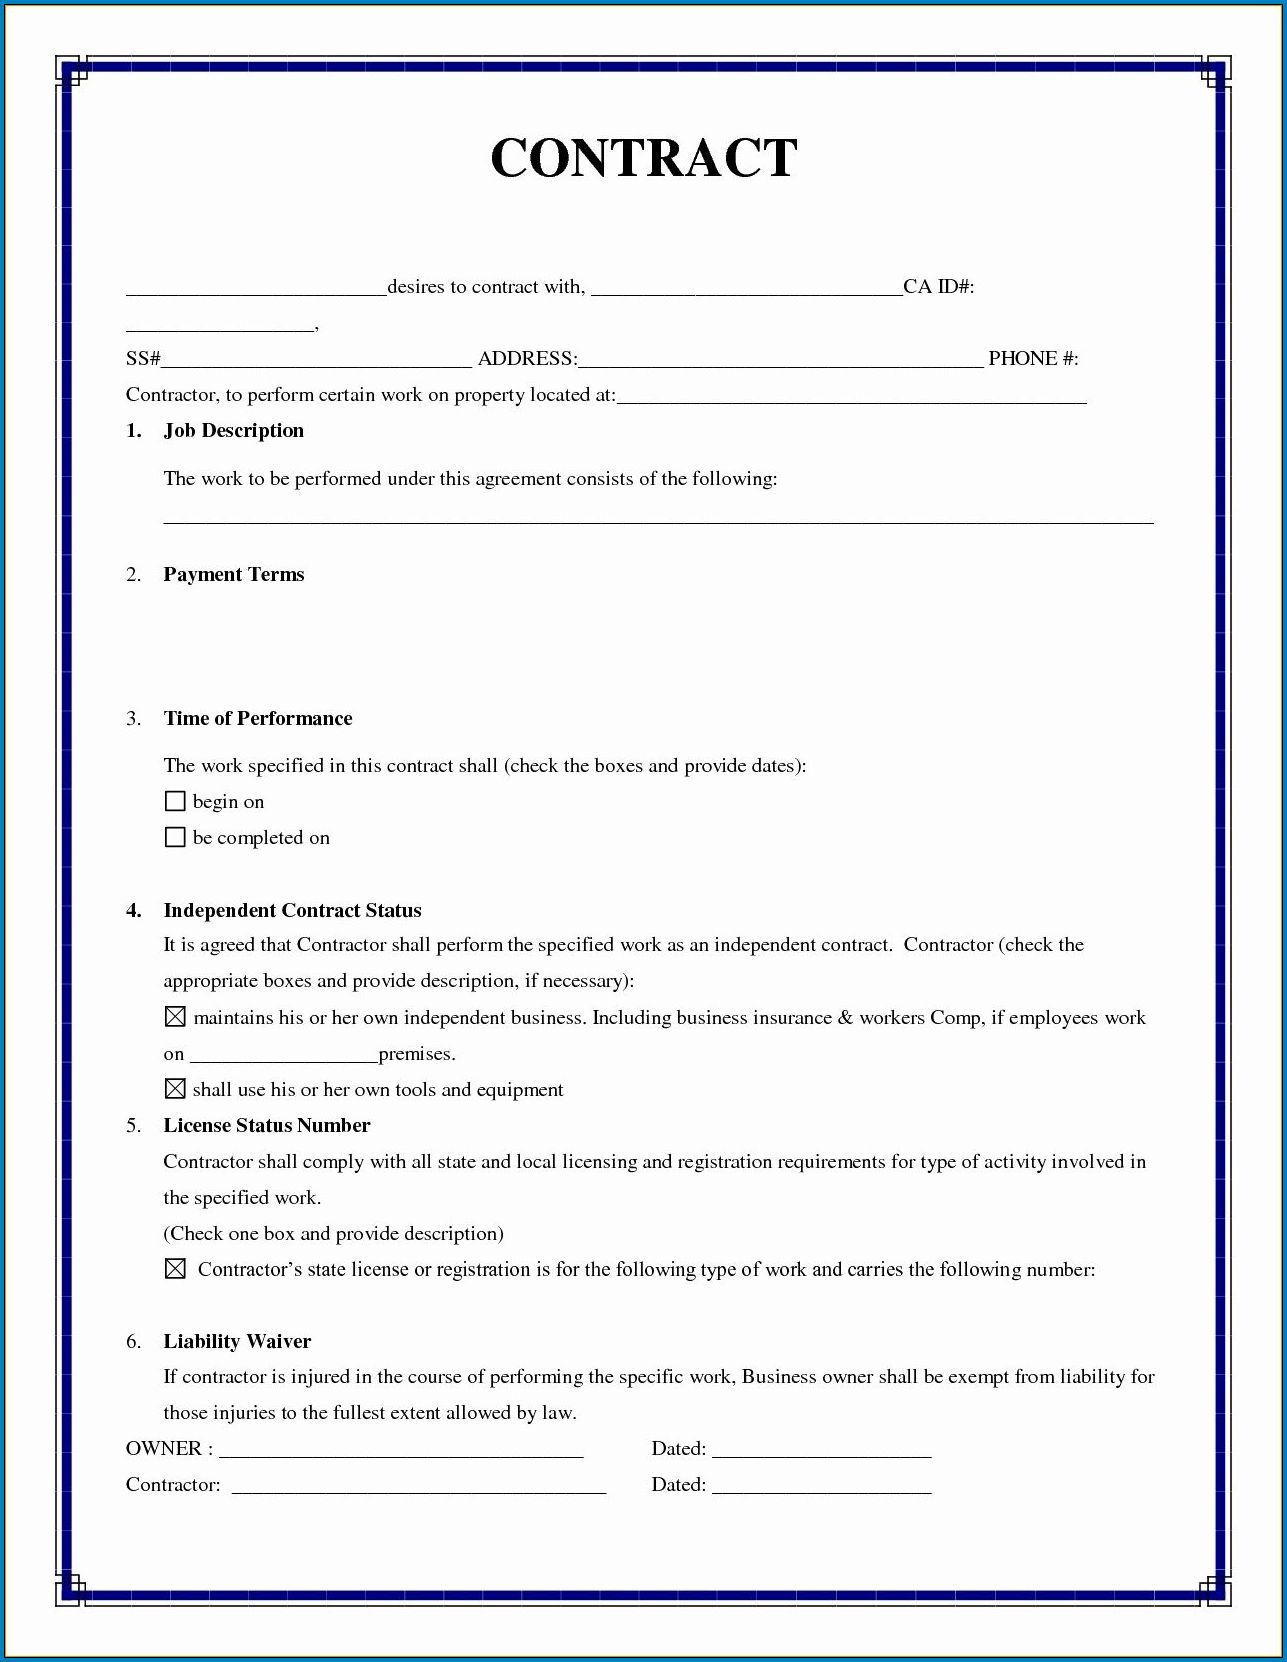 It is a photo of Free Printable Independent Contractor Agreement intended for rental agreement contract